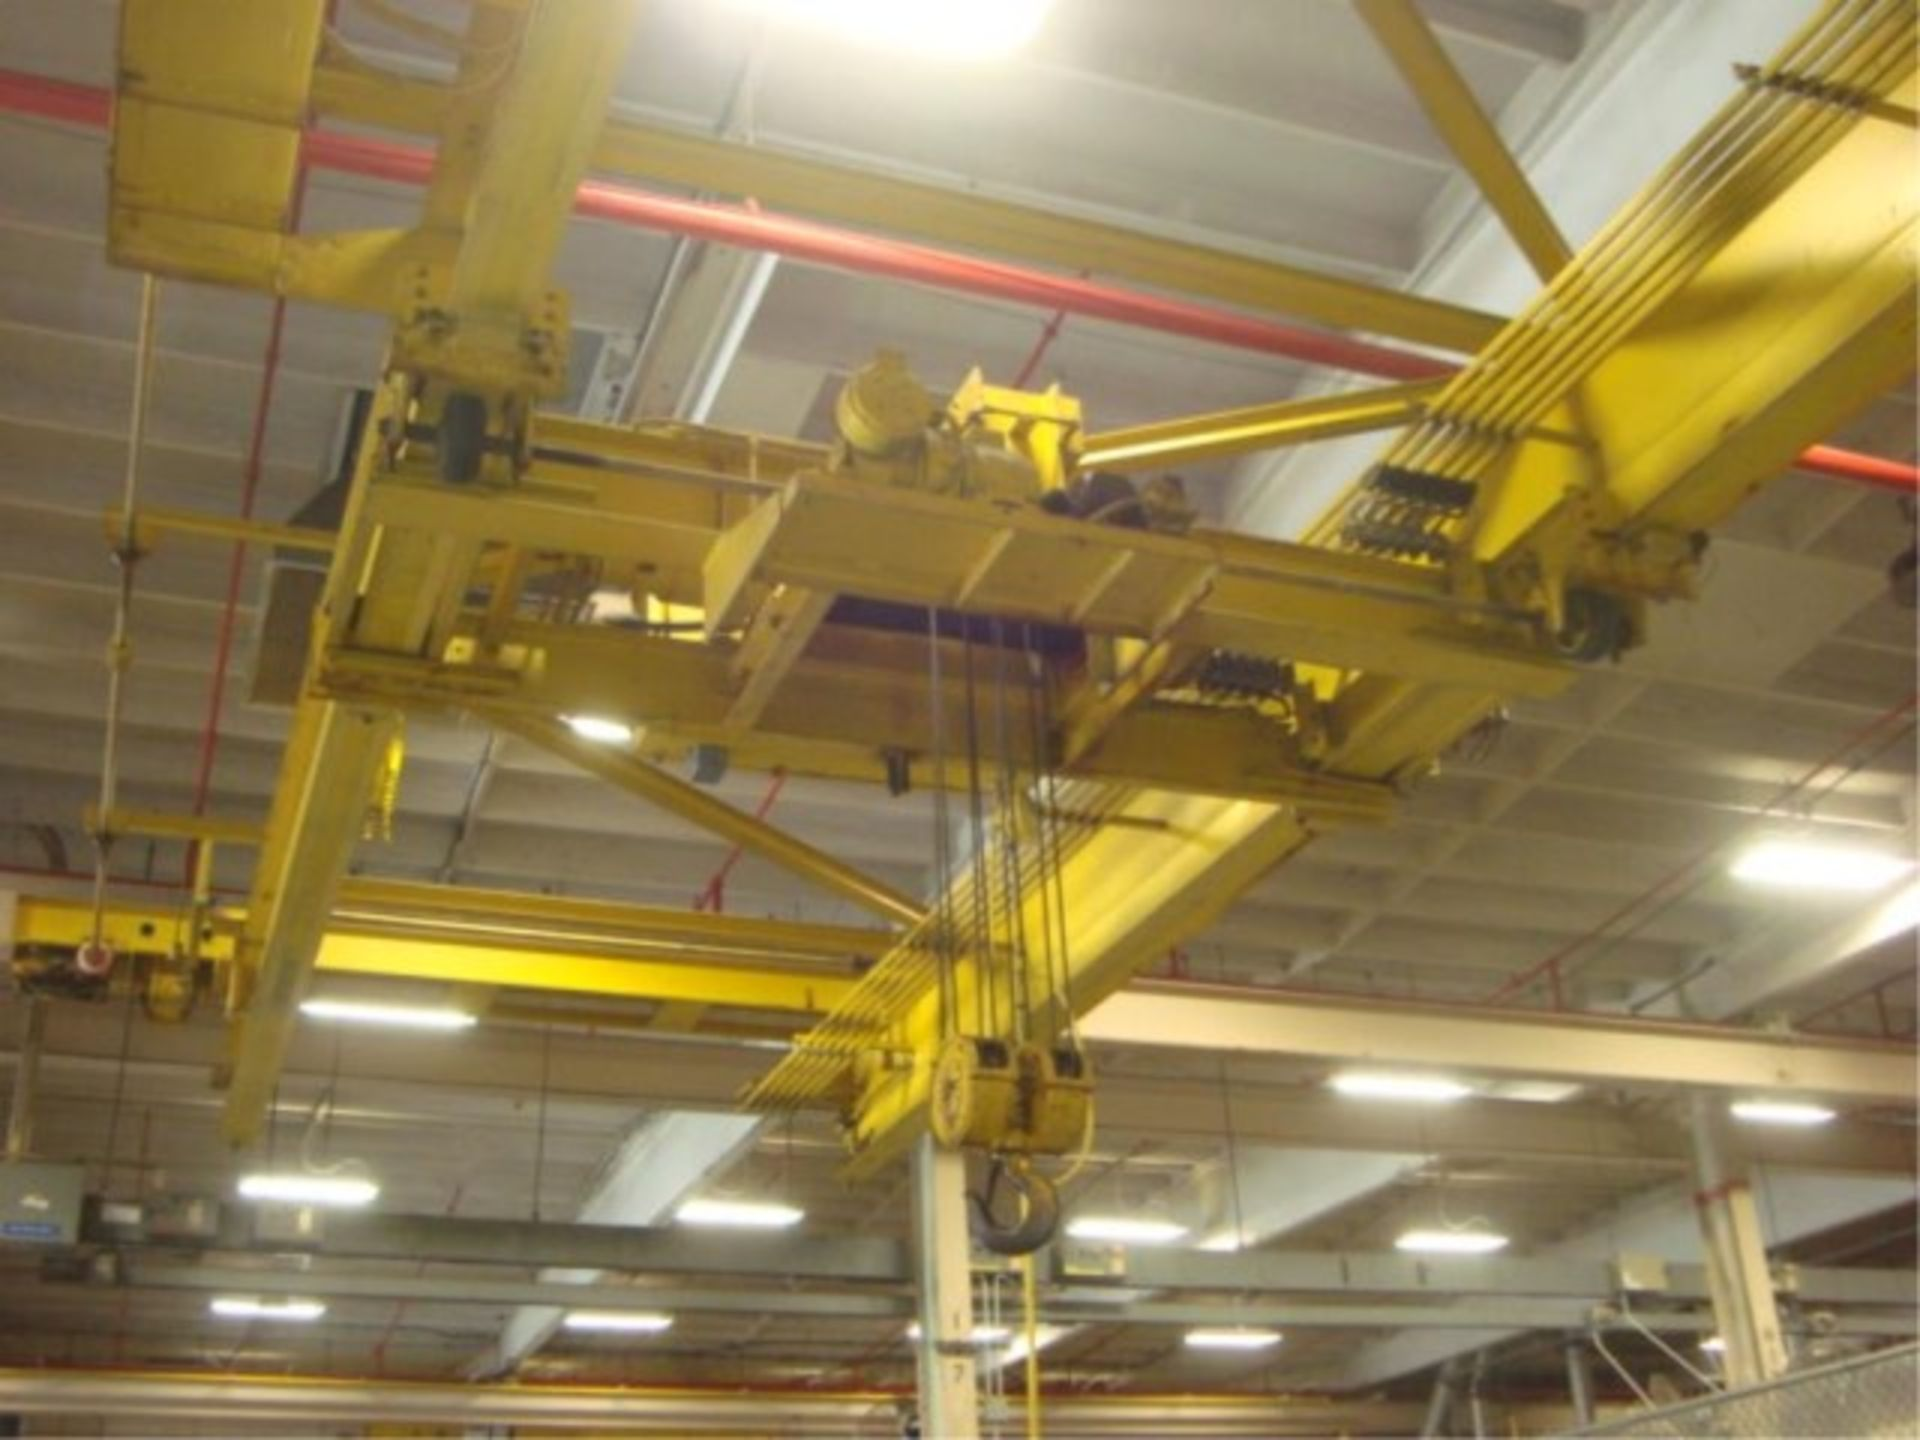 Lot 118 - 10-Ton Capacity Overhead Bridge Crane